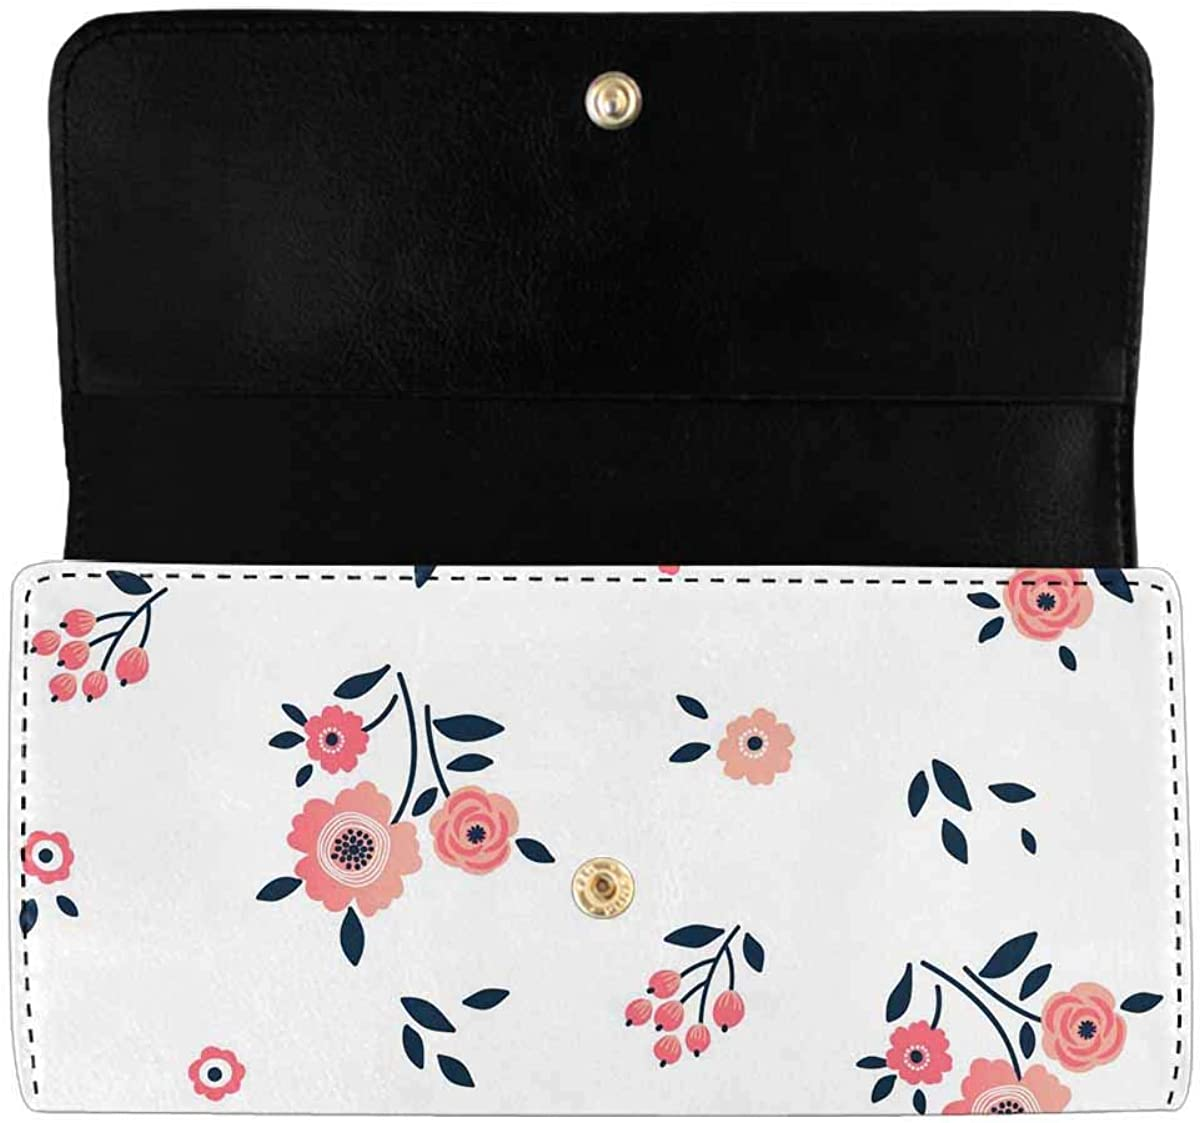 INTERESTPRINT Women's Trifold Long Clutch Wallets Corals and Algae PU Leather Clutch Bag